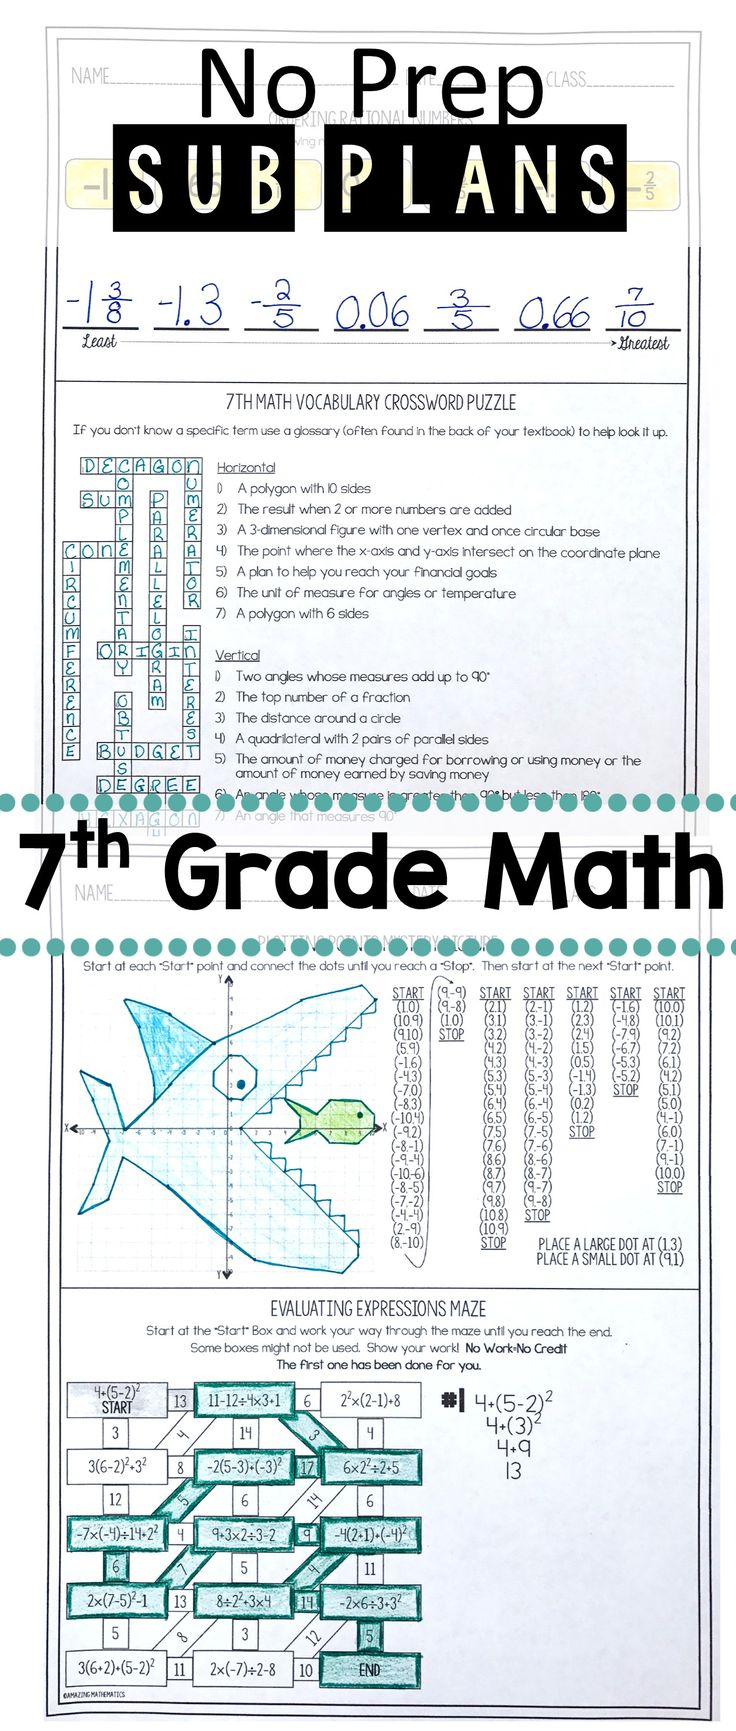 These no prep sub plans SAVED MY DAY when I was sick last year.  My 7th grade math students loved this substitute teacher worksheet and I loved that it was no prep.  All I had to do was print it and I was done.  Love!